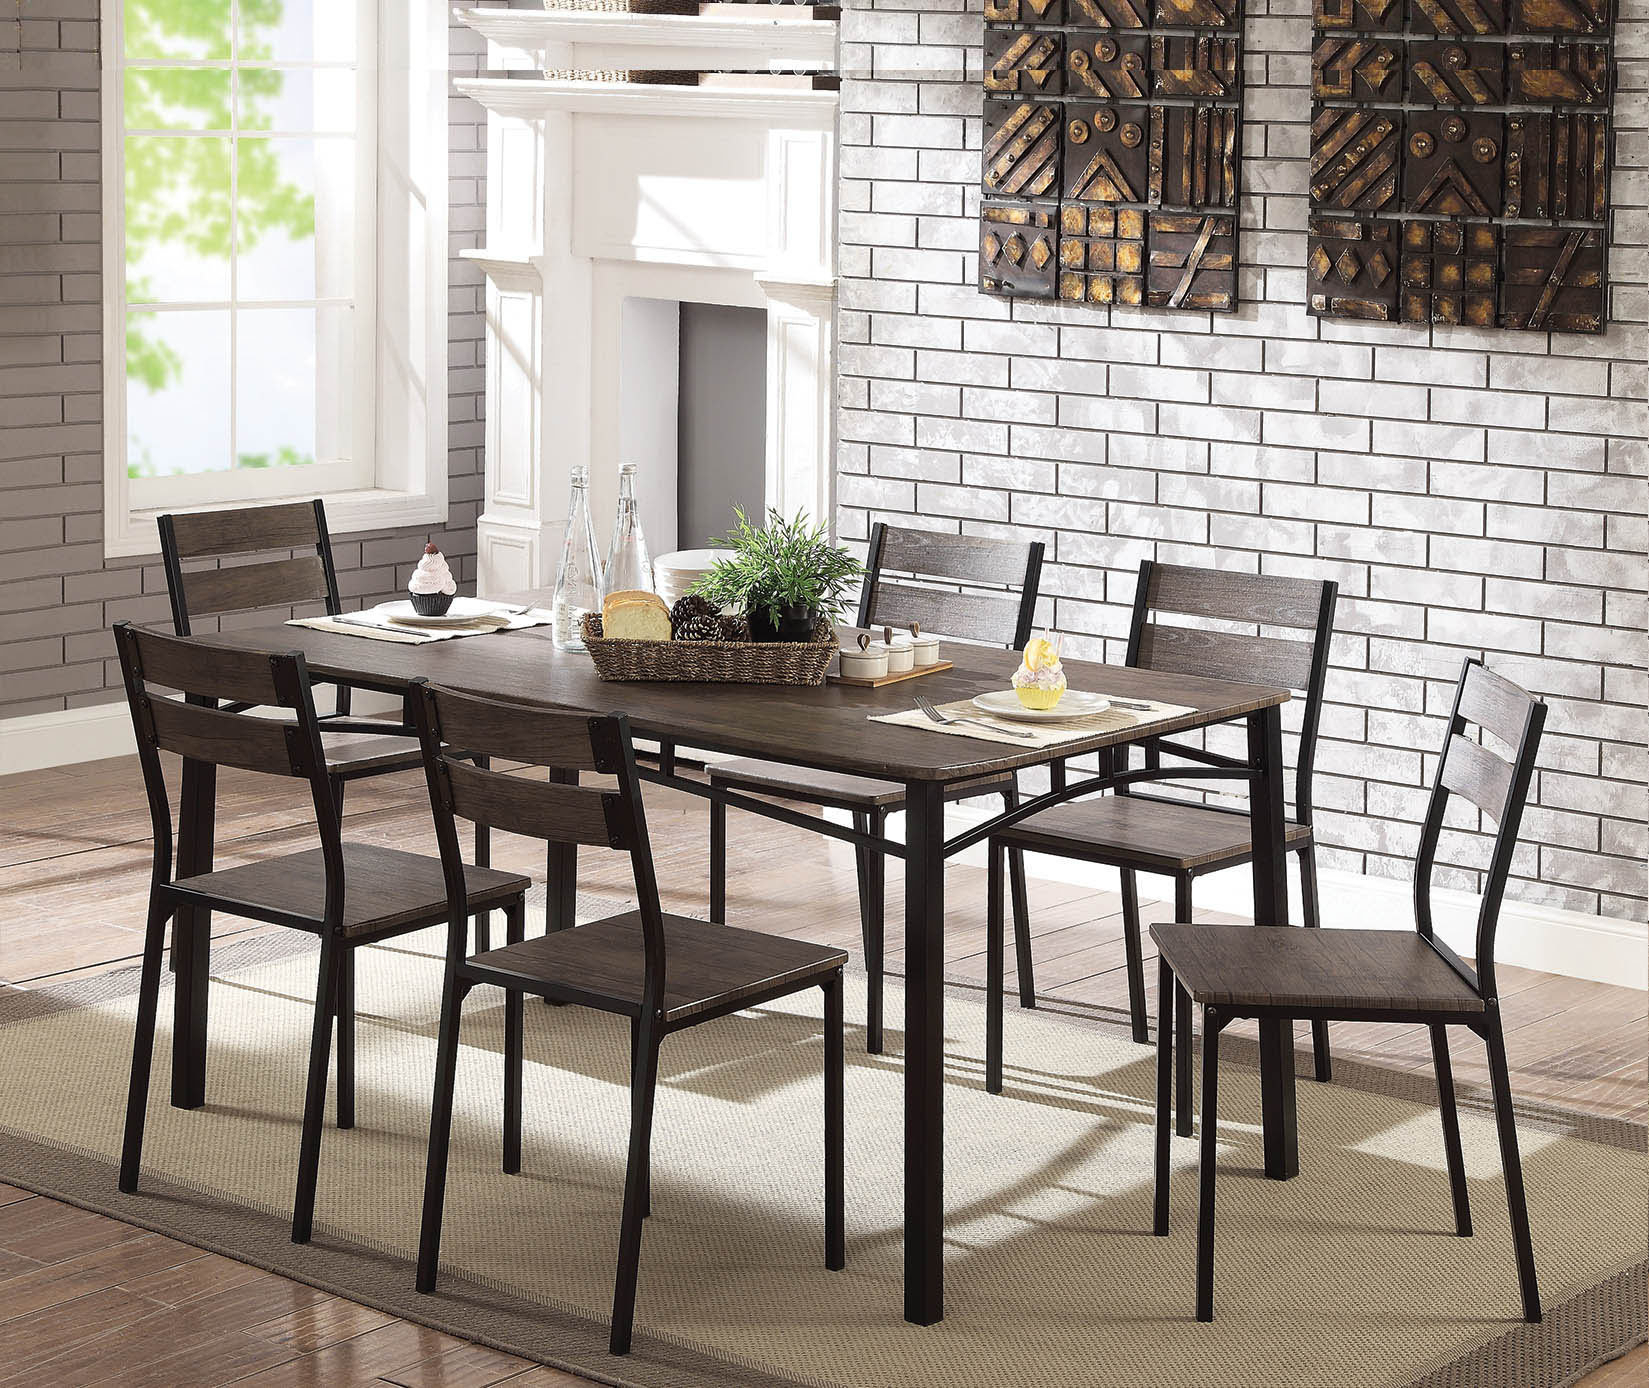 Autberry 7 Piece Dining Set Pertaining To 2018 Autberry 5 Piece Dining Sets (View 8 of 20)